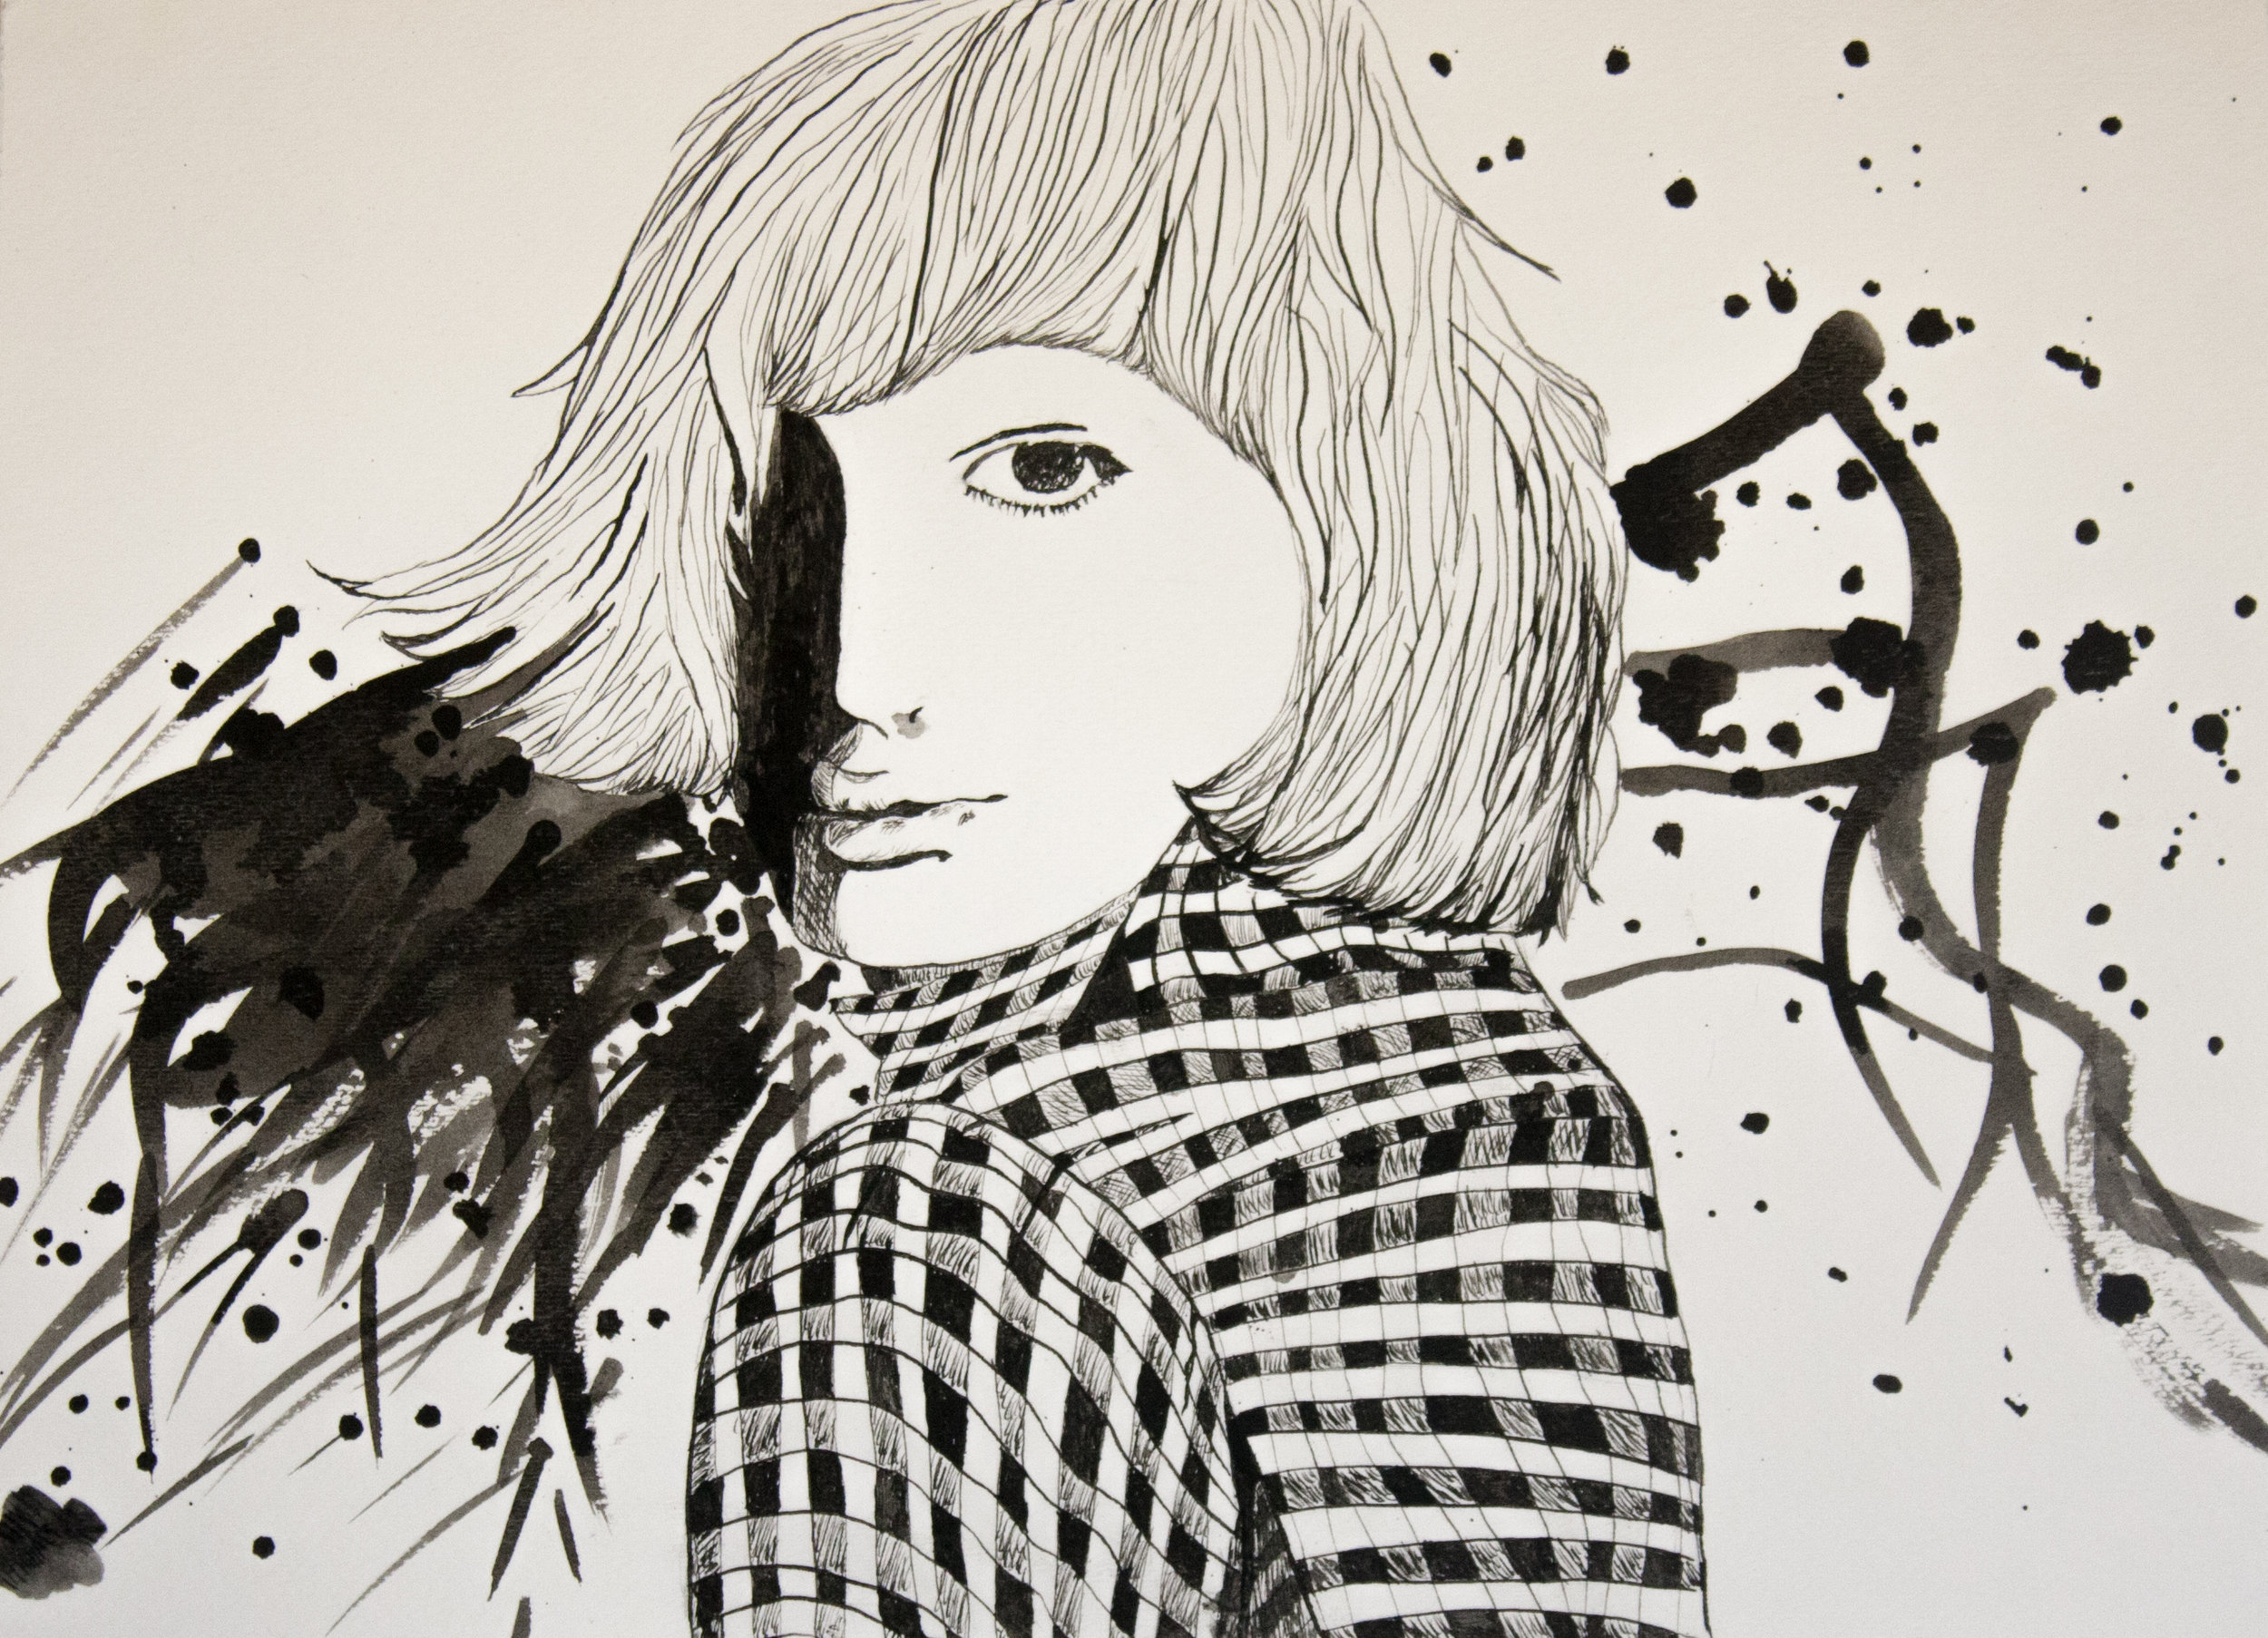 Pen and Ink